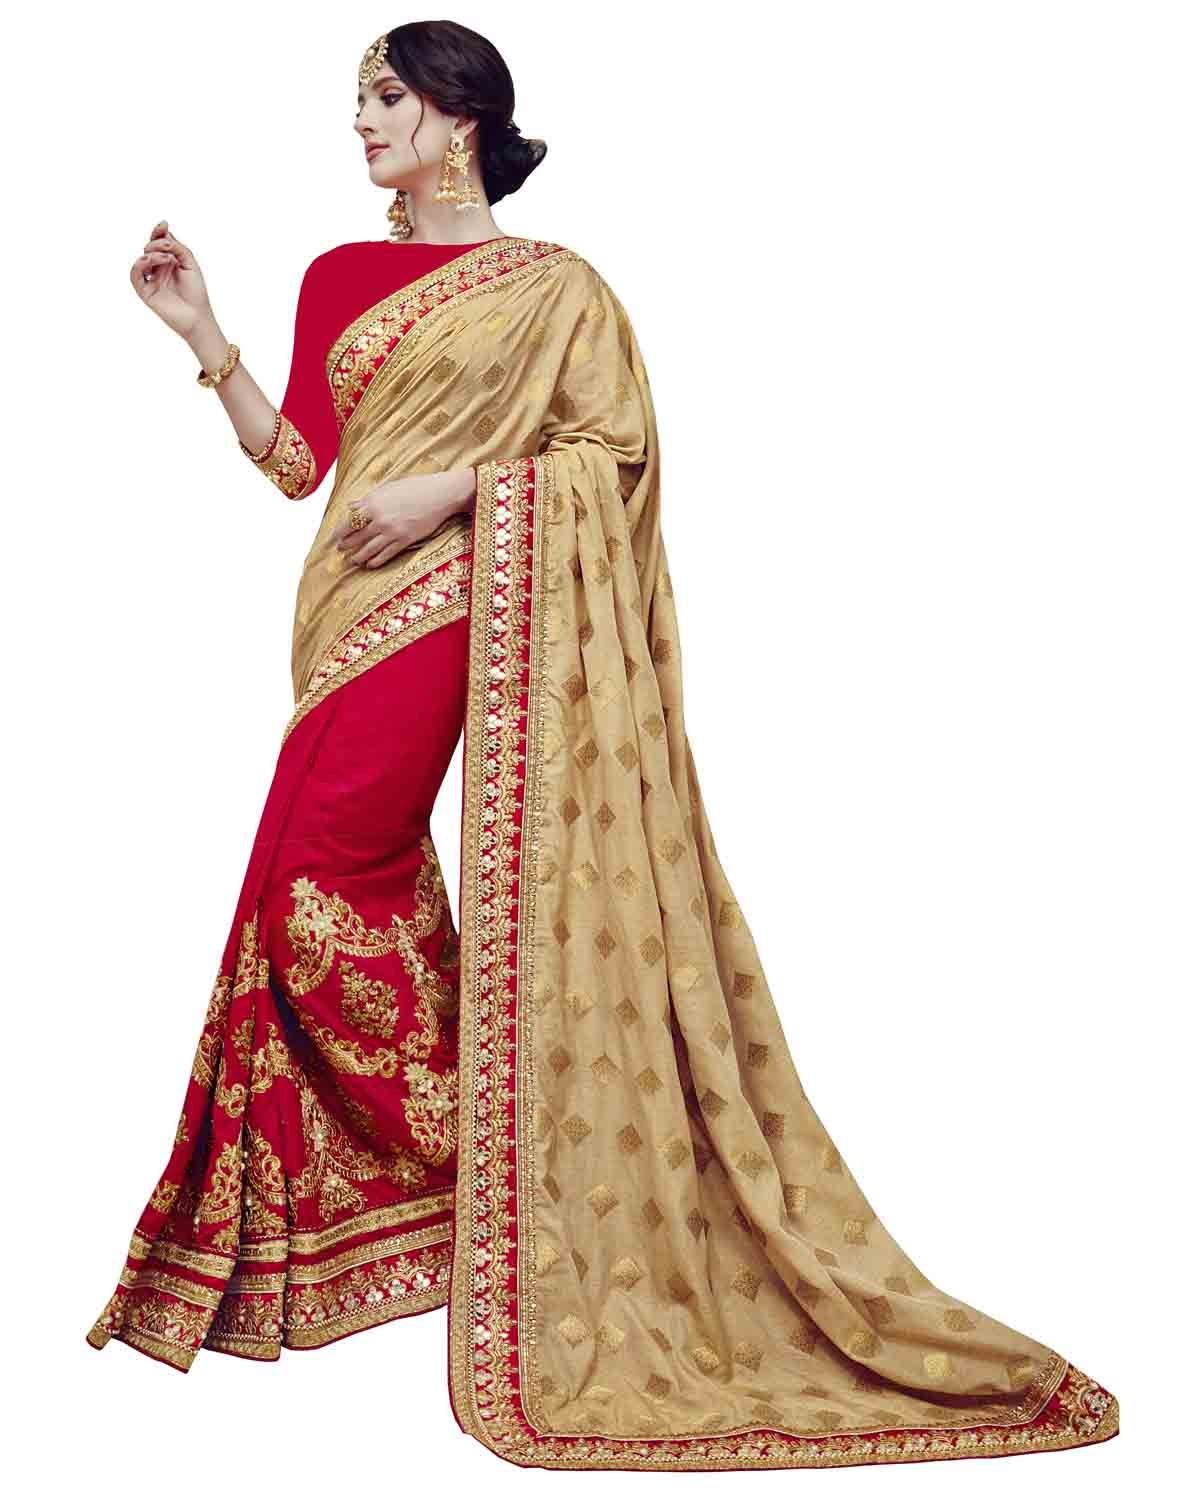 Femiss Silk Georgette Gold & red Saree With Blouse,Gold & Red,Free size